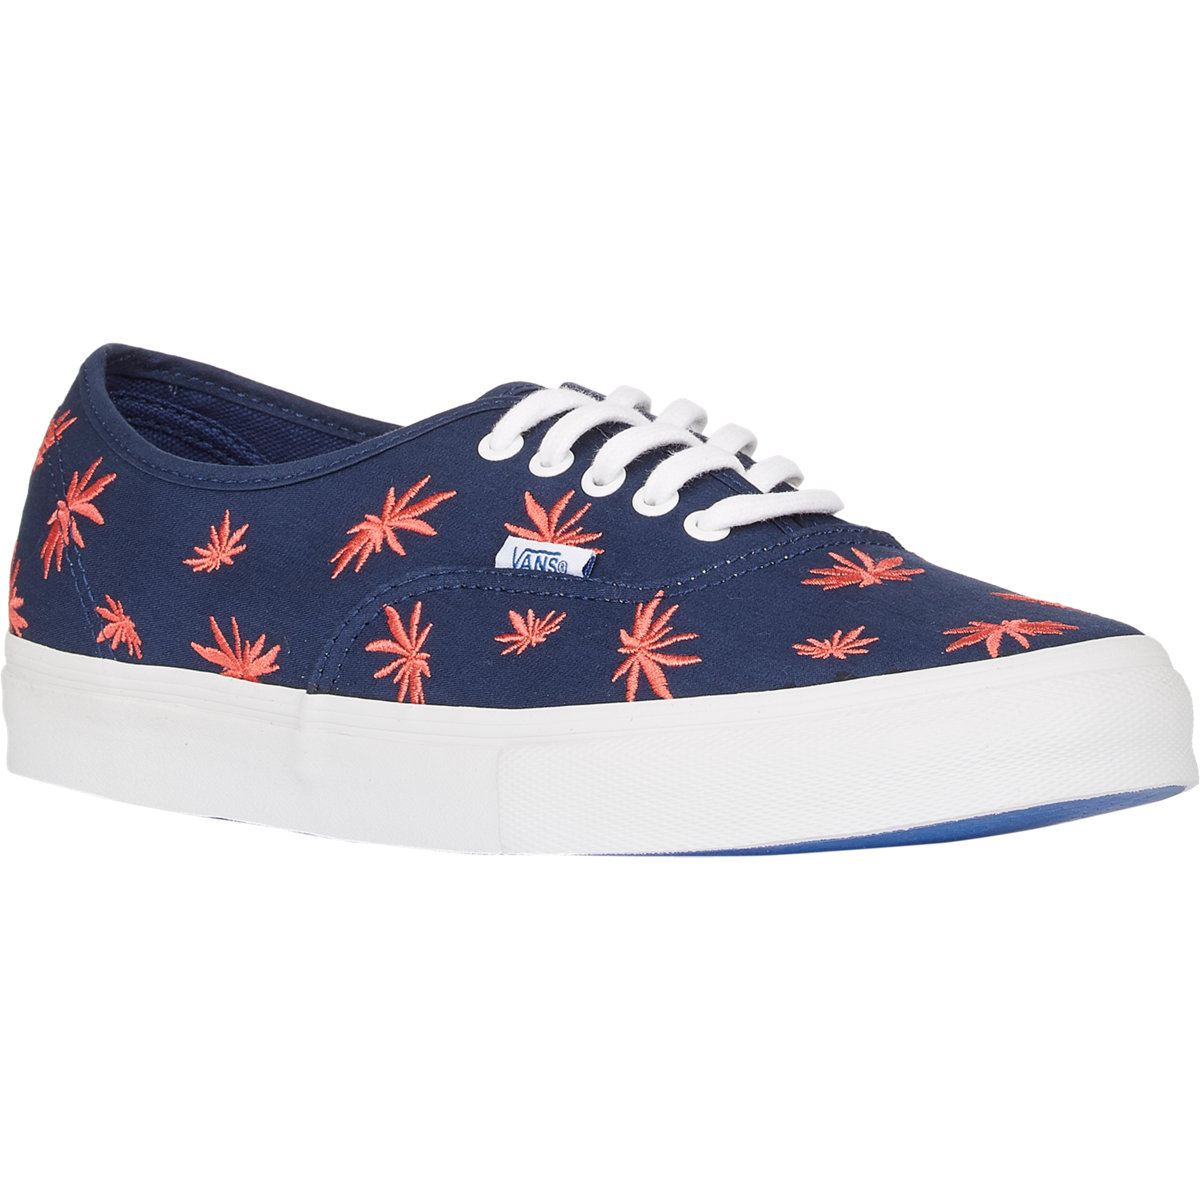 2vans authentic palm